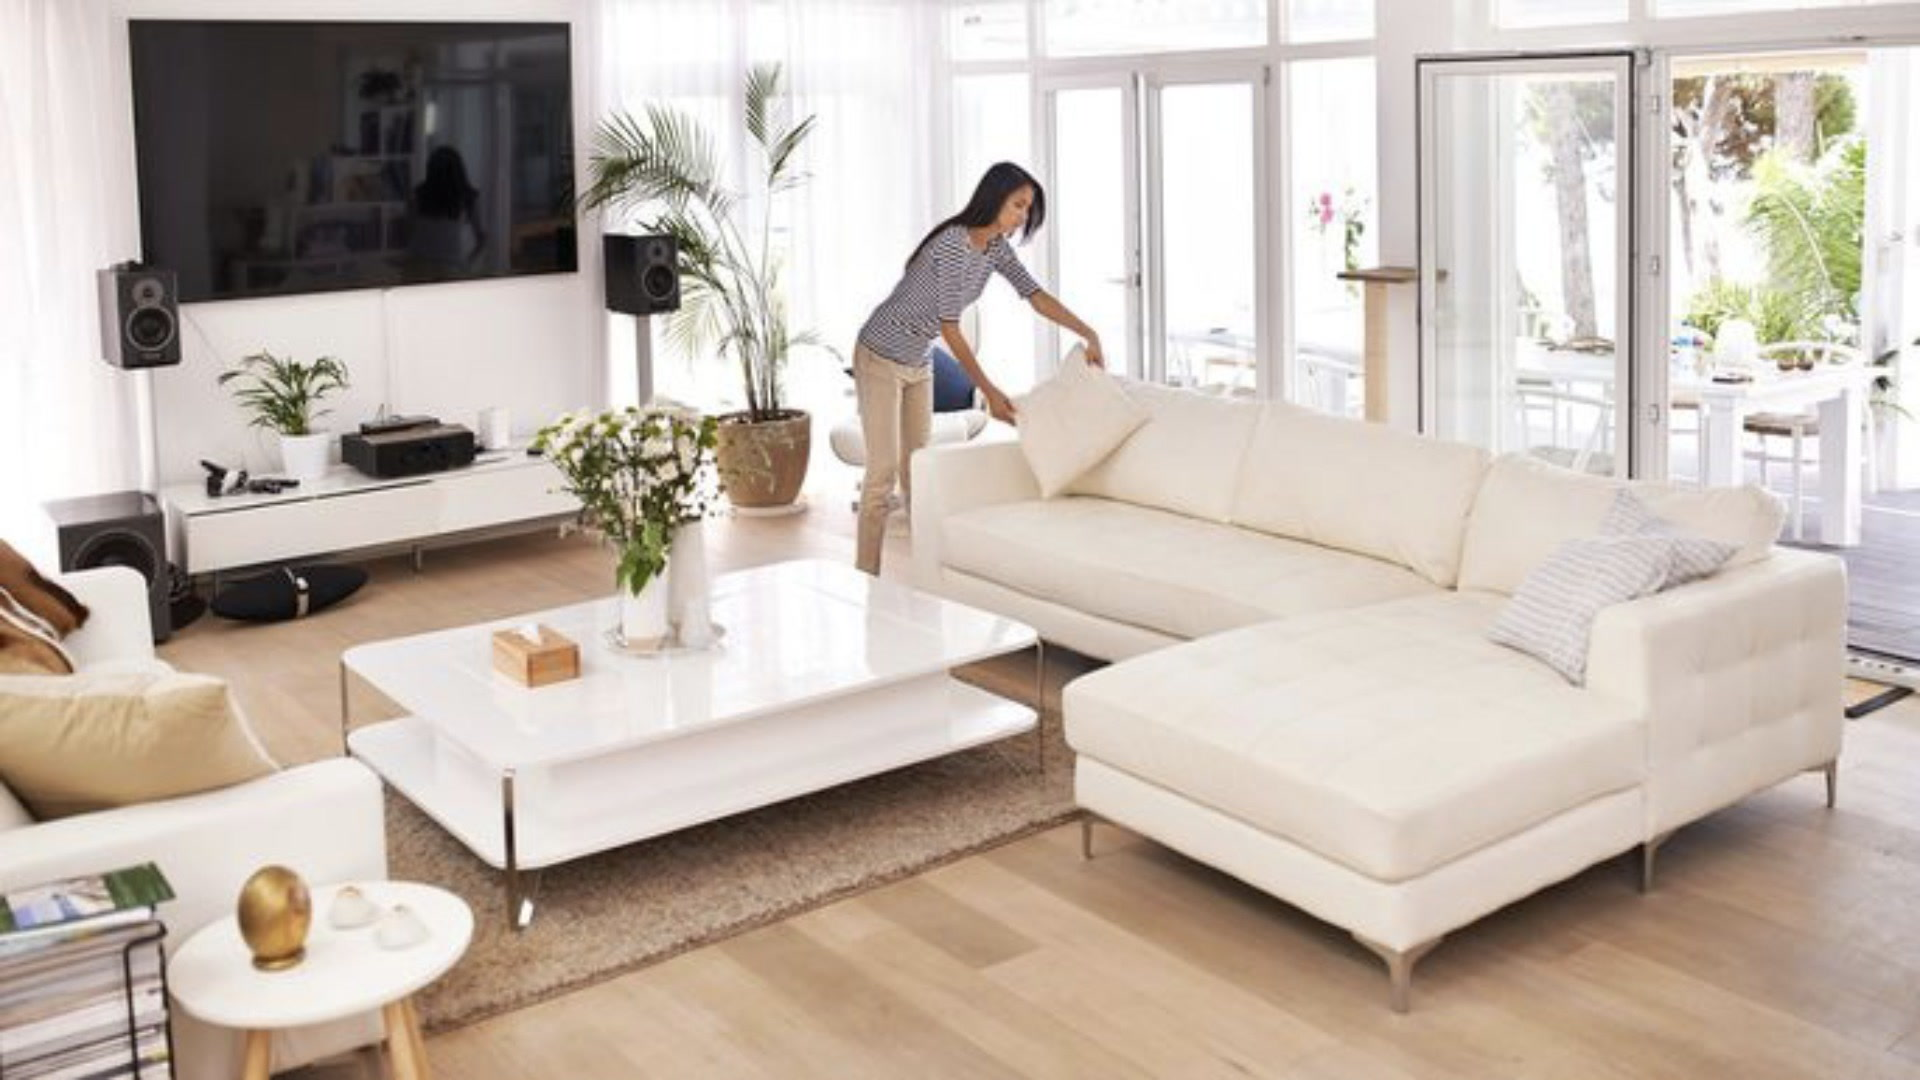 home stager decorating an upscale living room